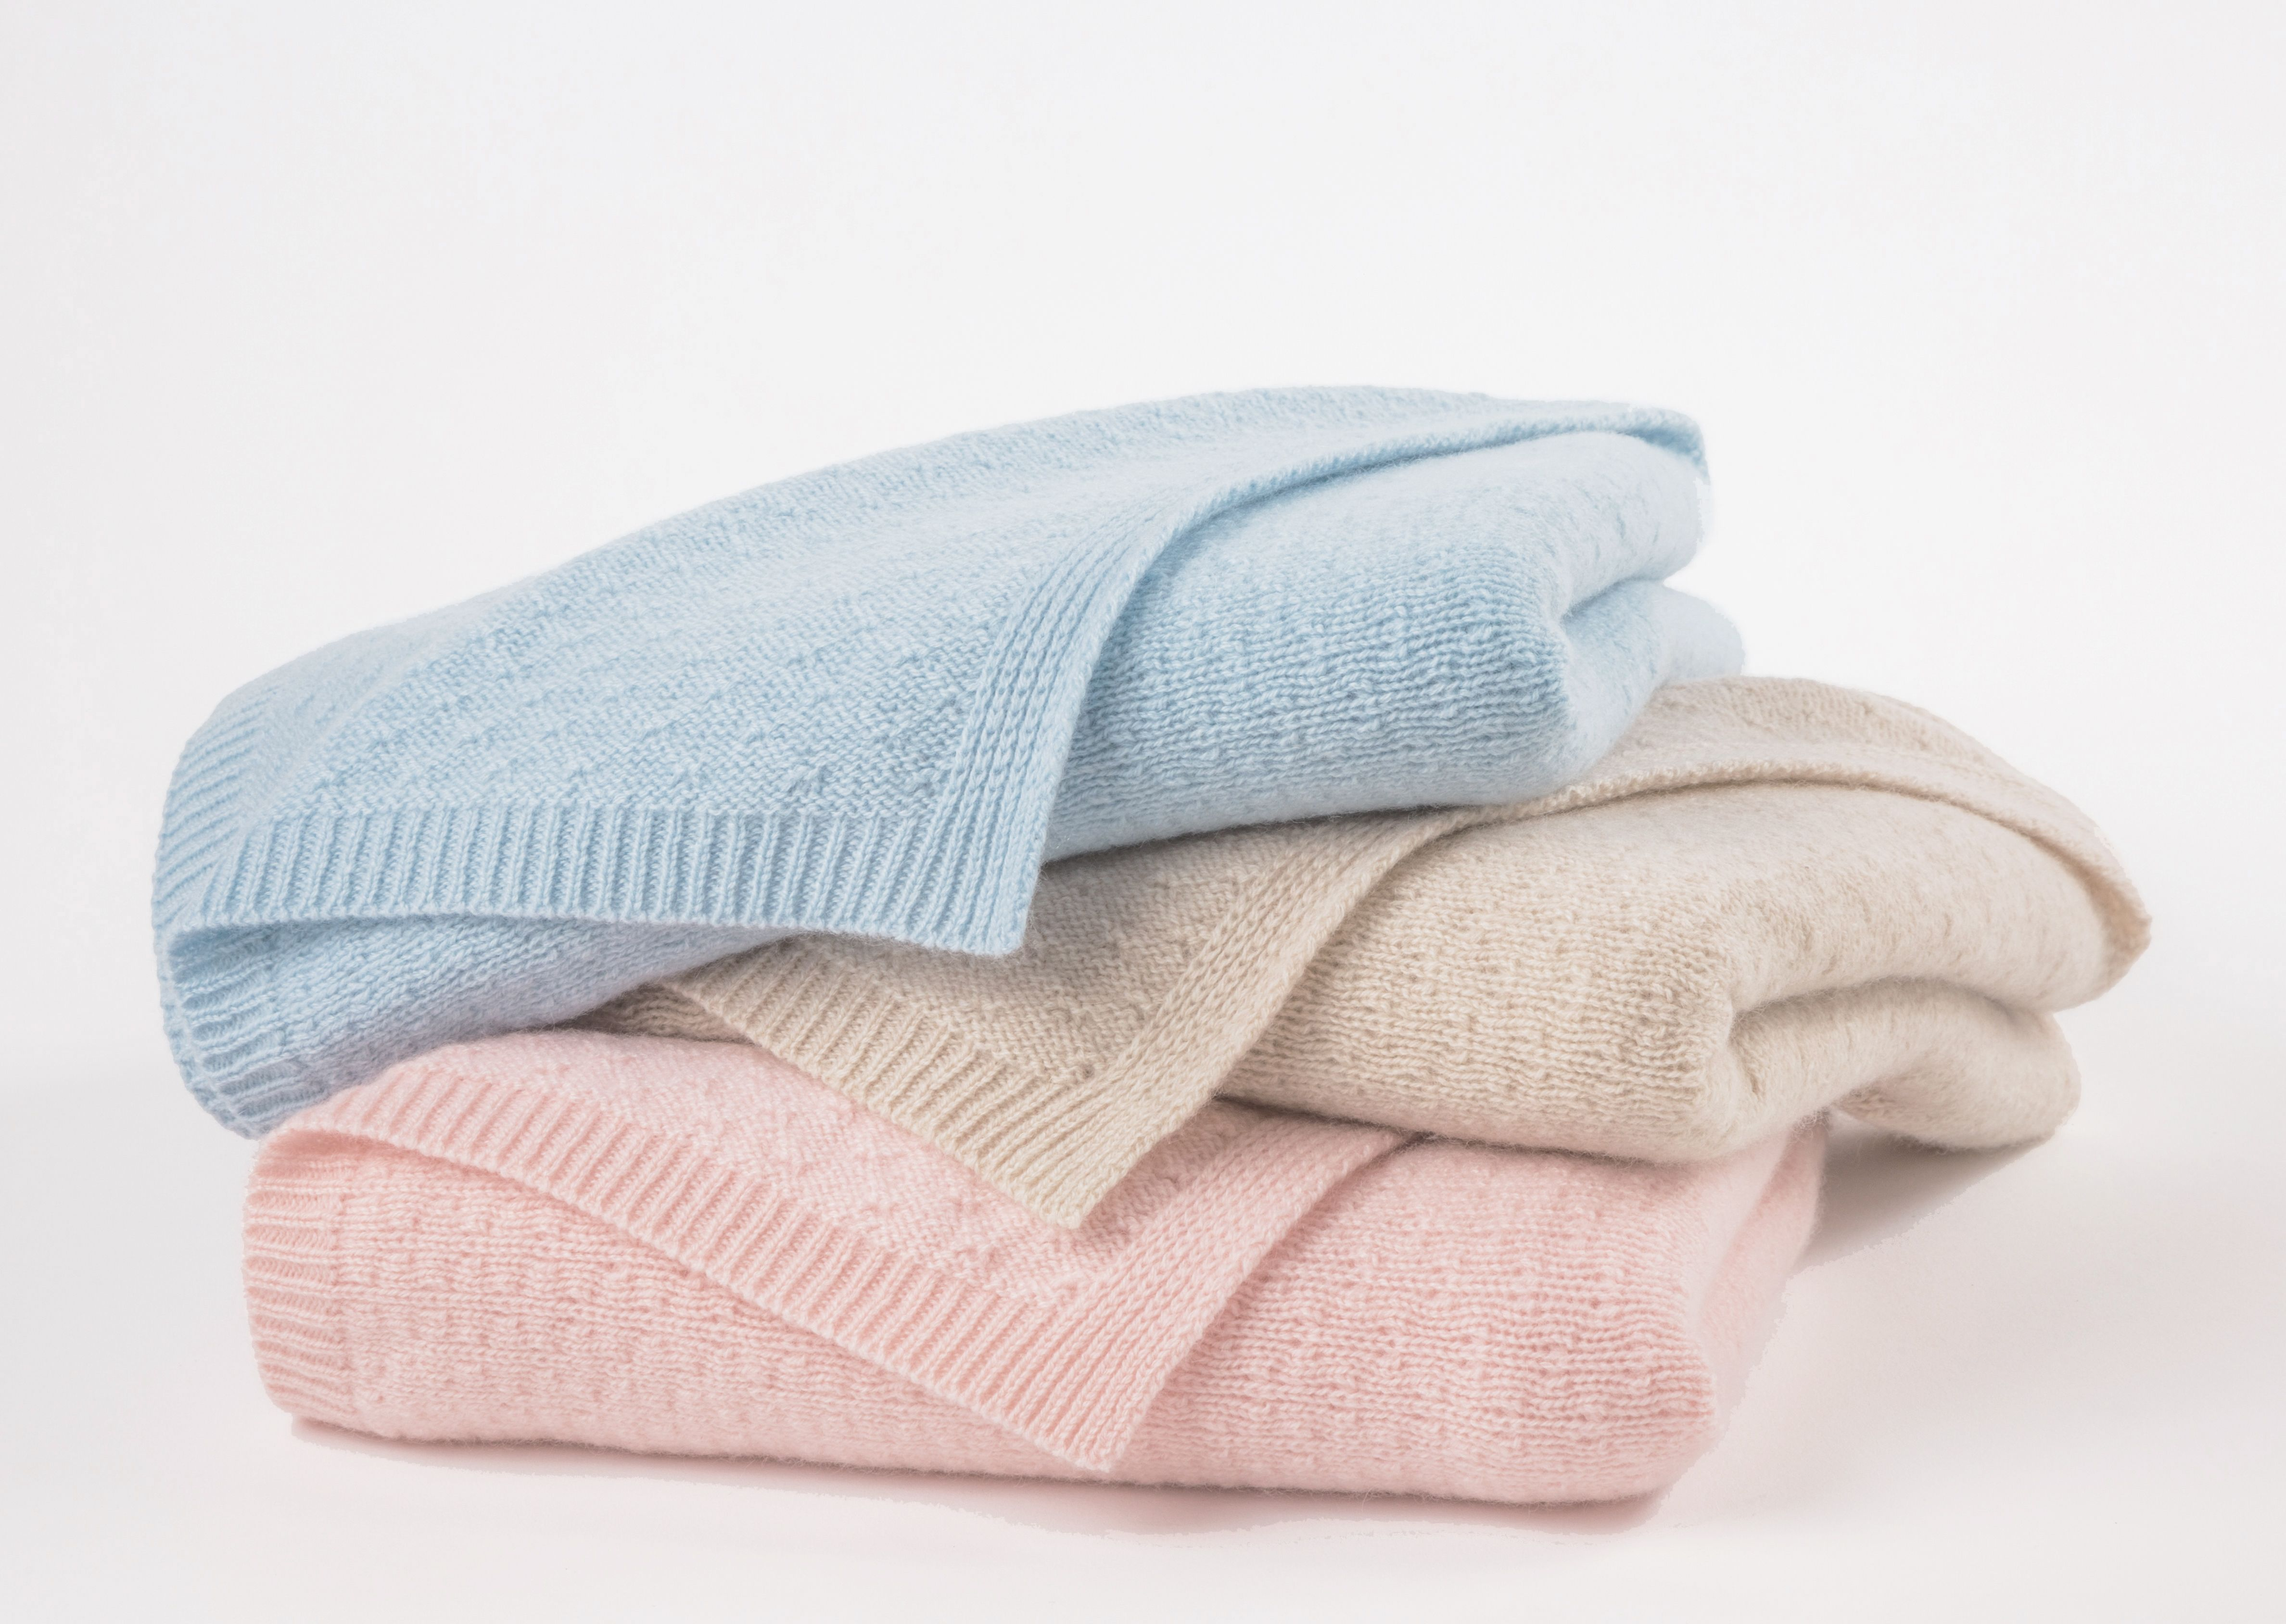 Super Soft 100 Cashmere Baby Blanket Made In Usa With Images Cashmere Baby Blanket Baby Design